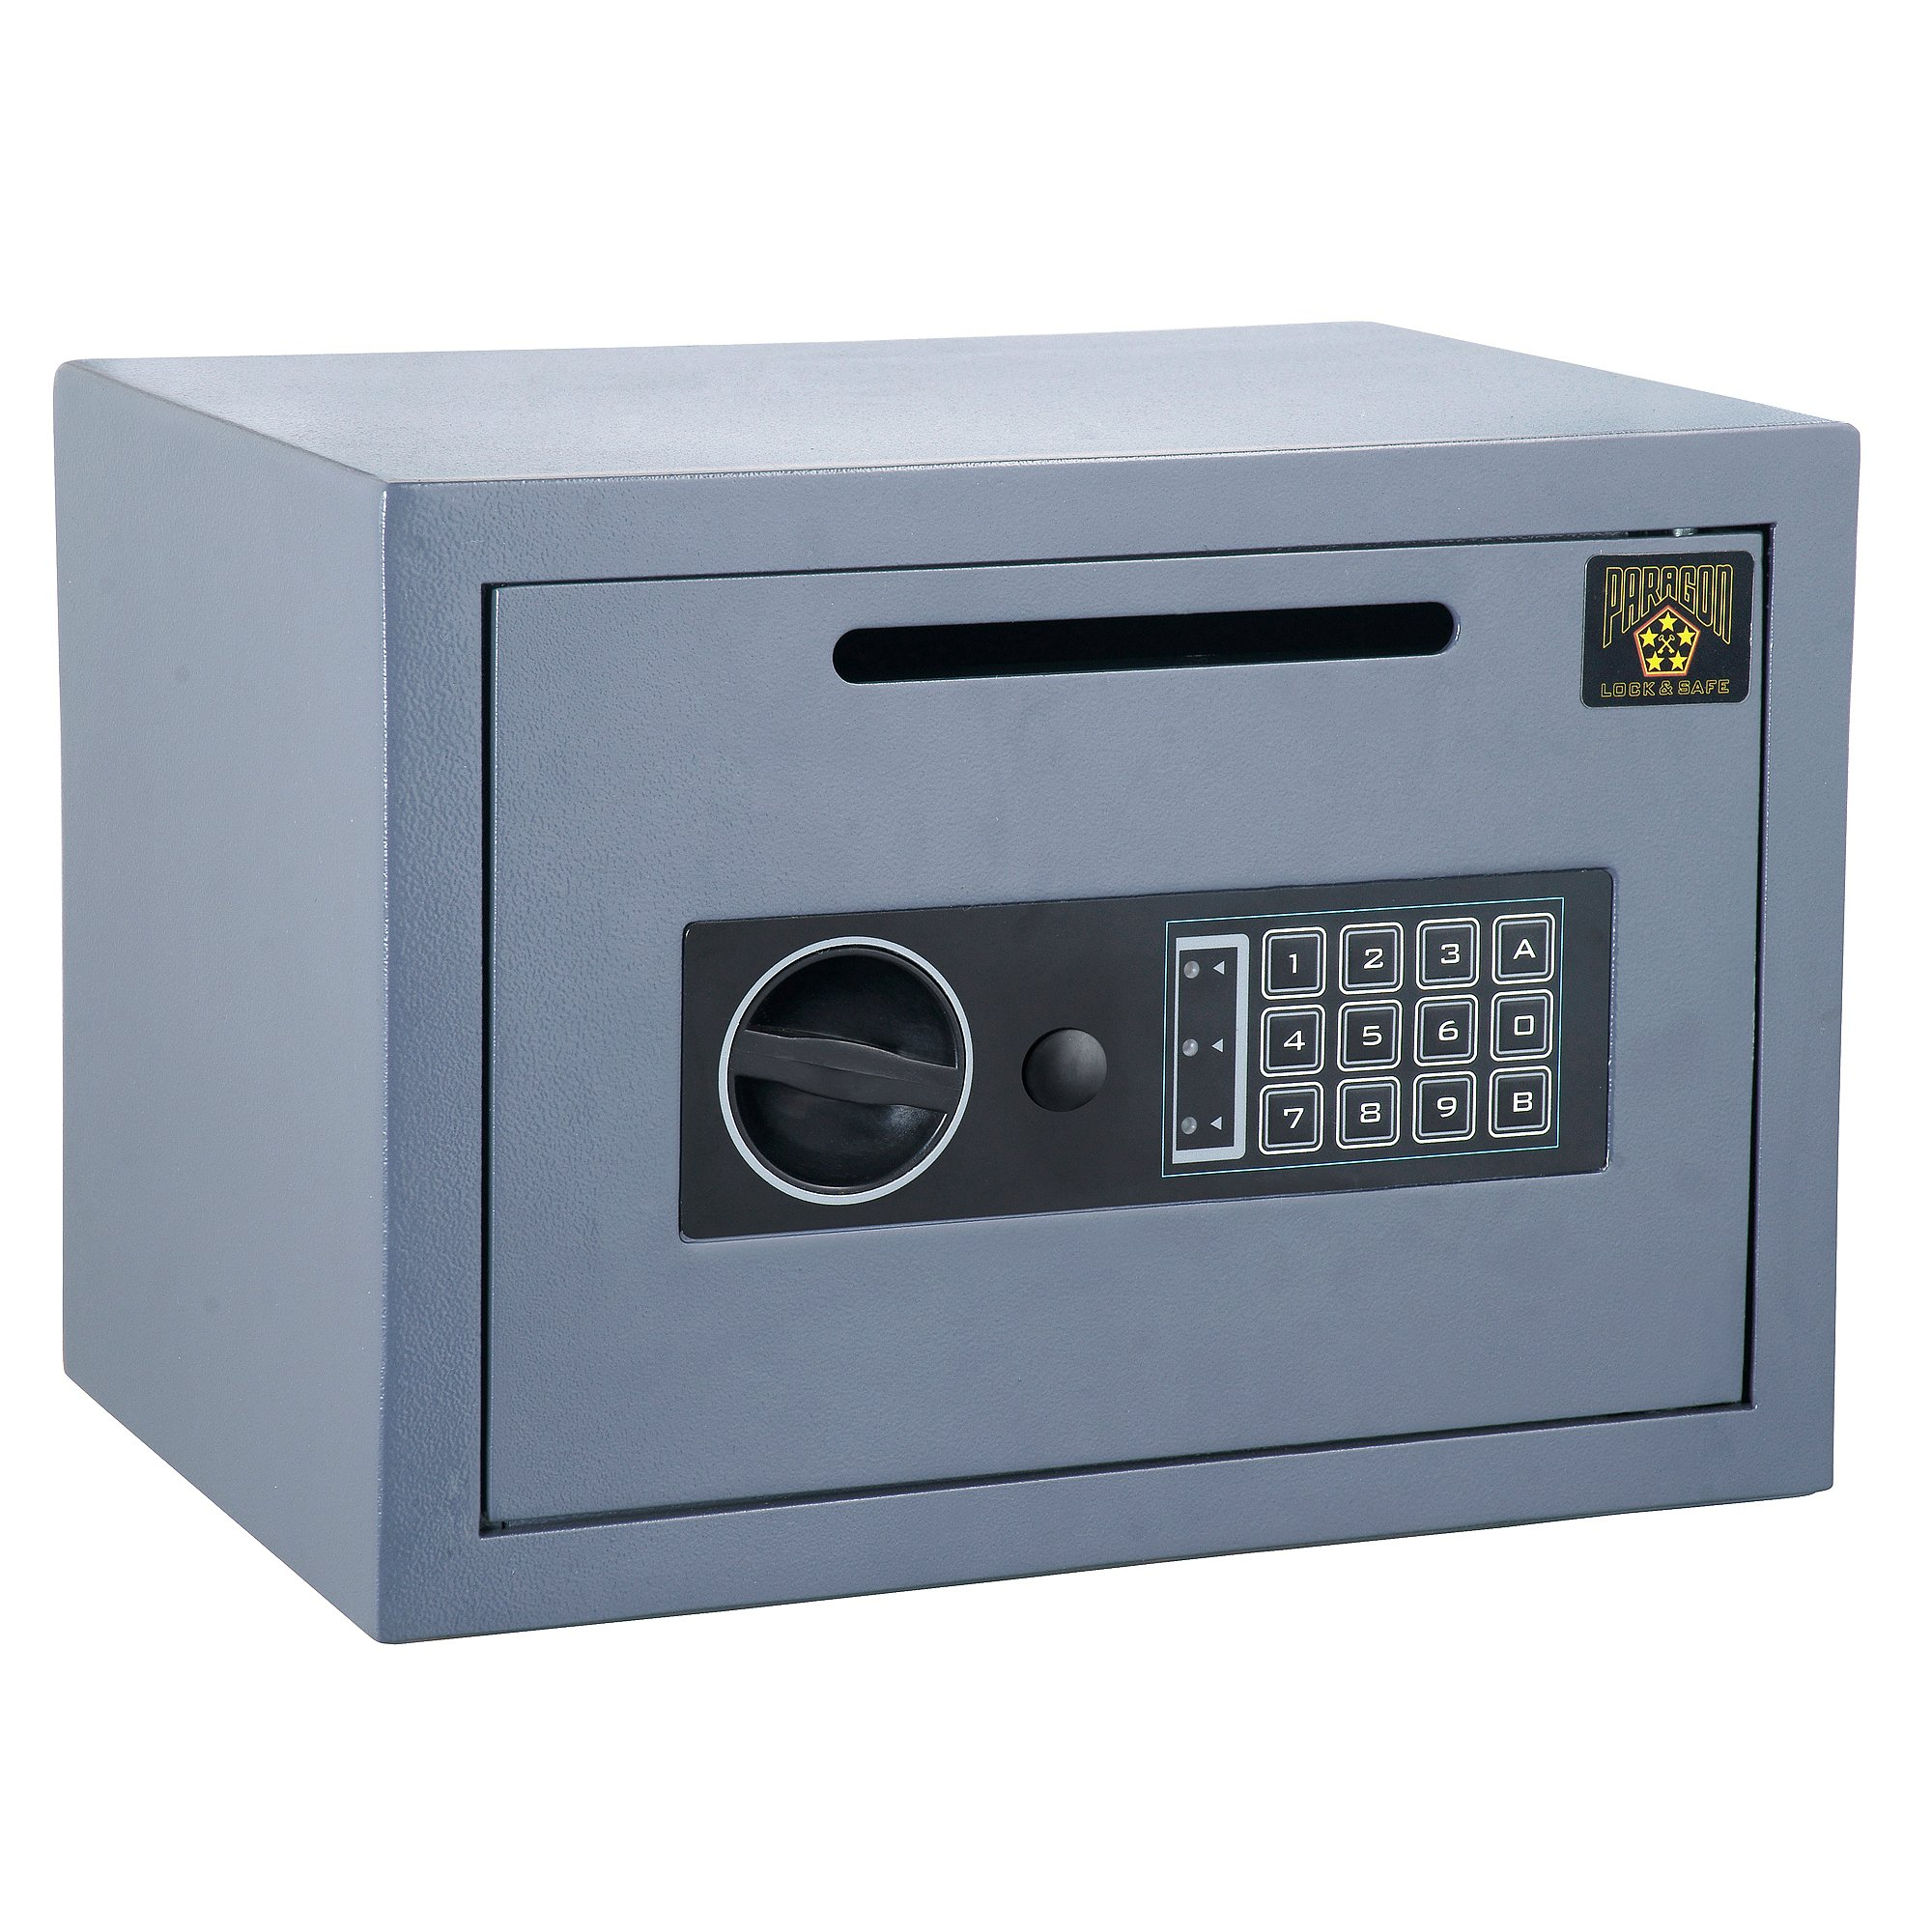 7804 Paragon Lock & Safe CashKing Digital Depository Drop Safe .54 CF Cash Heavy Duty by Paragon Lock and Safe